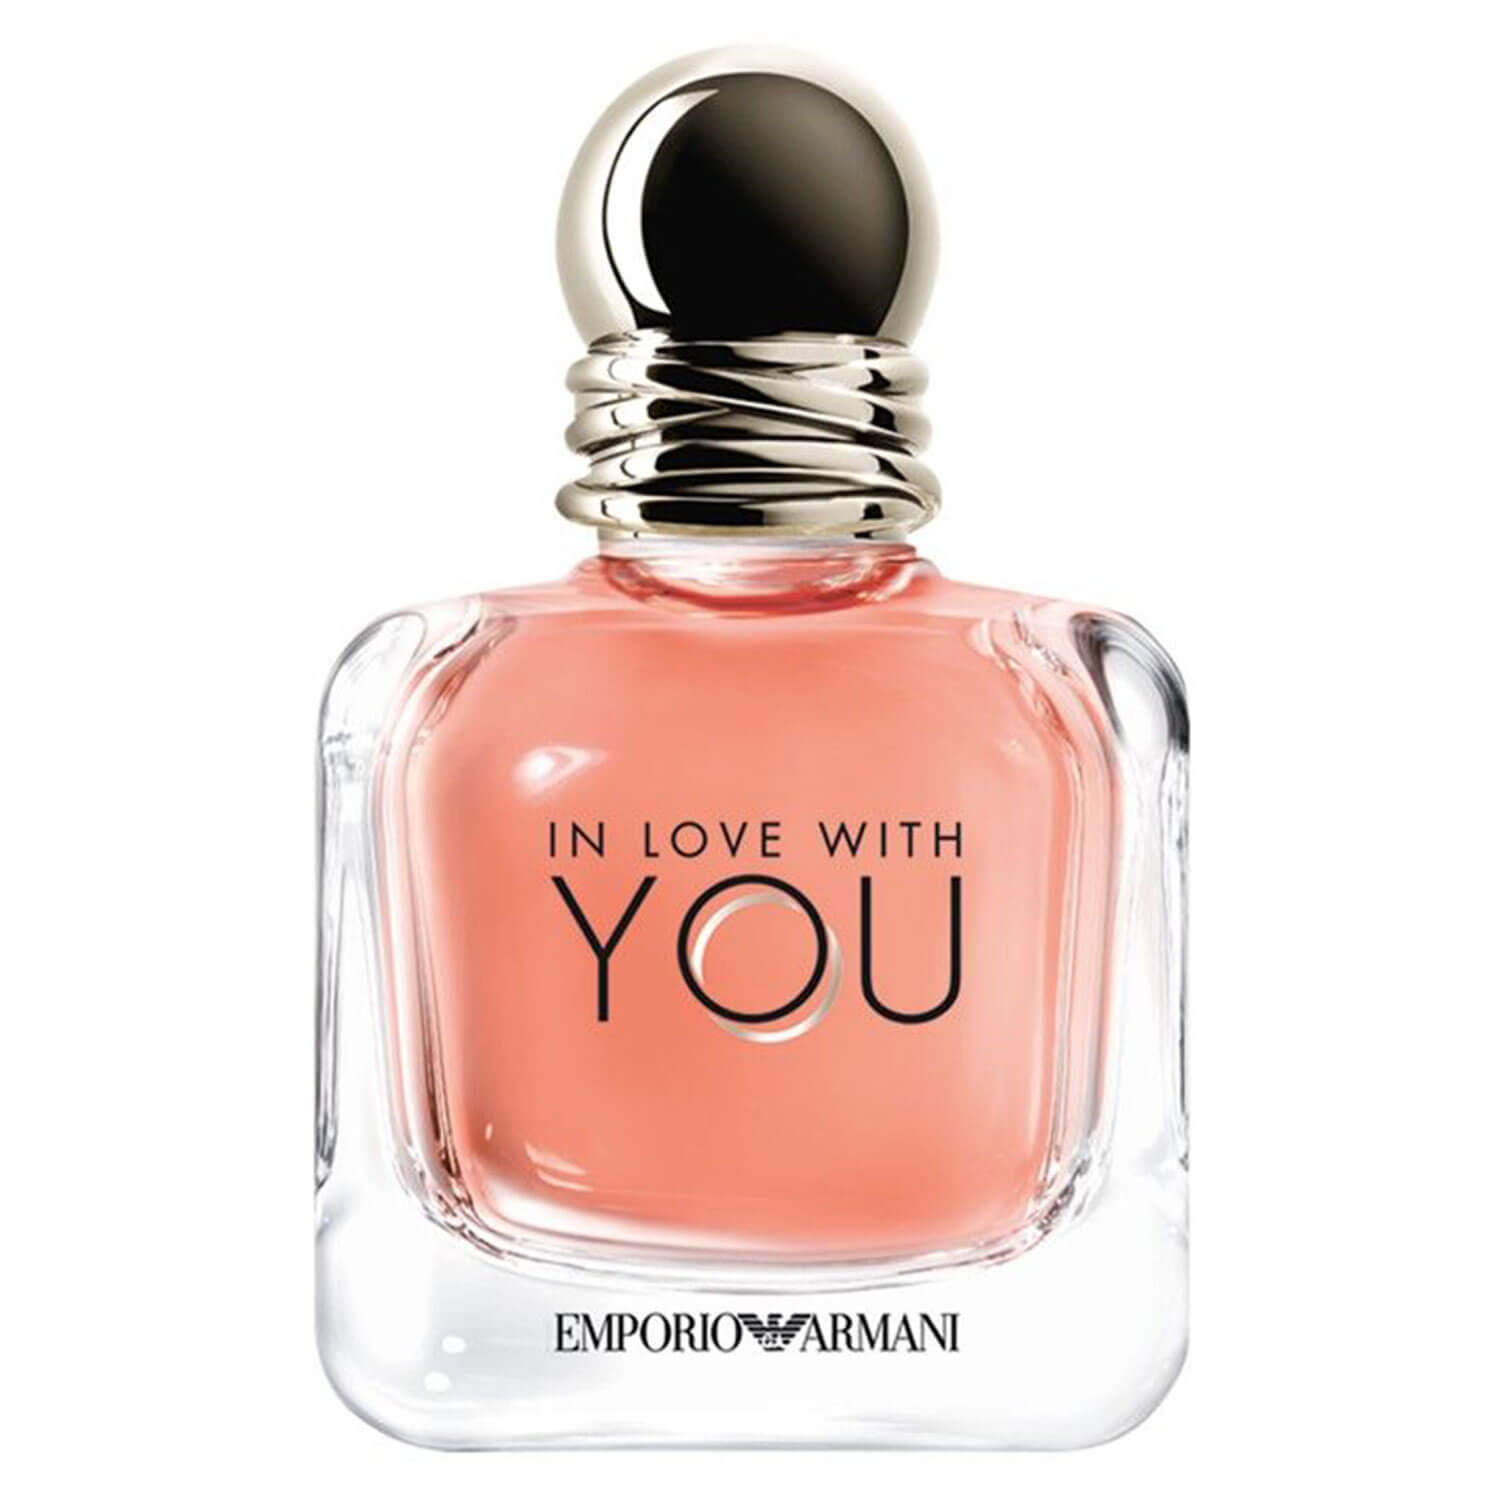 Emporio Armani - In Love With You Eau de Parfum